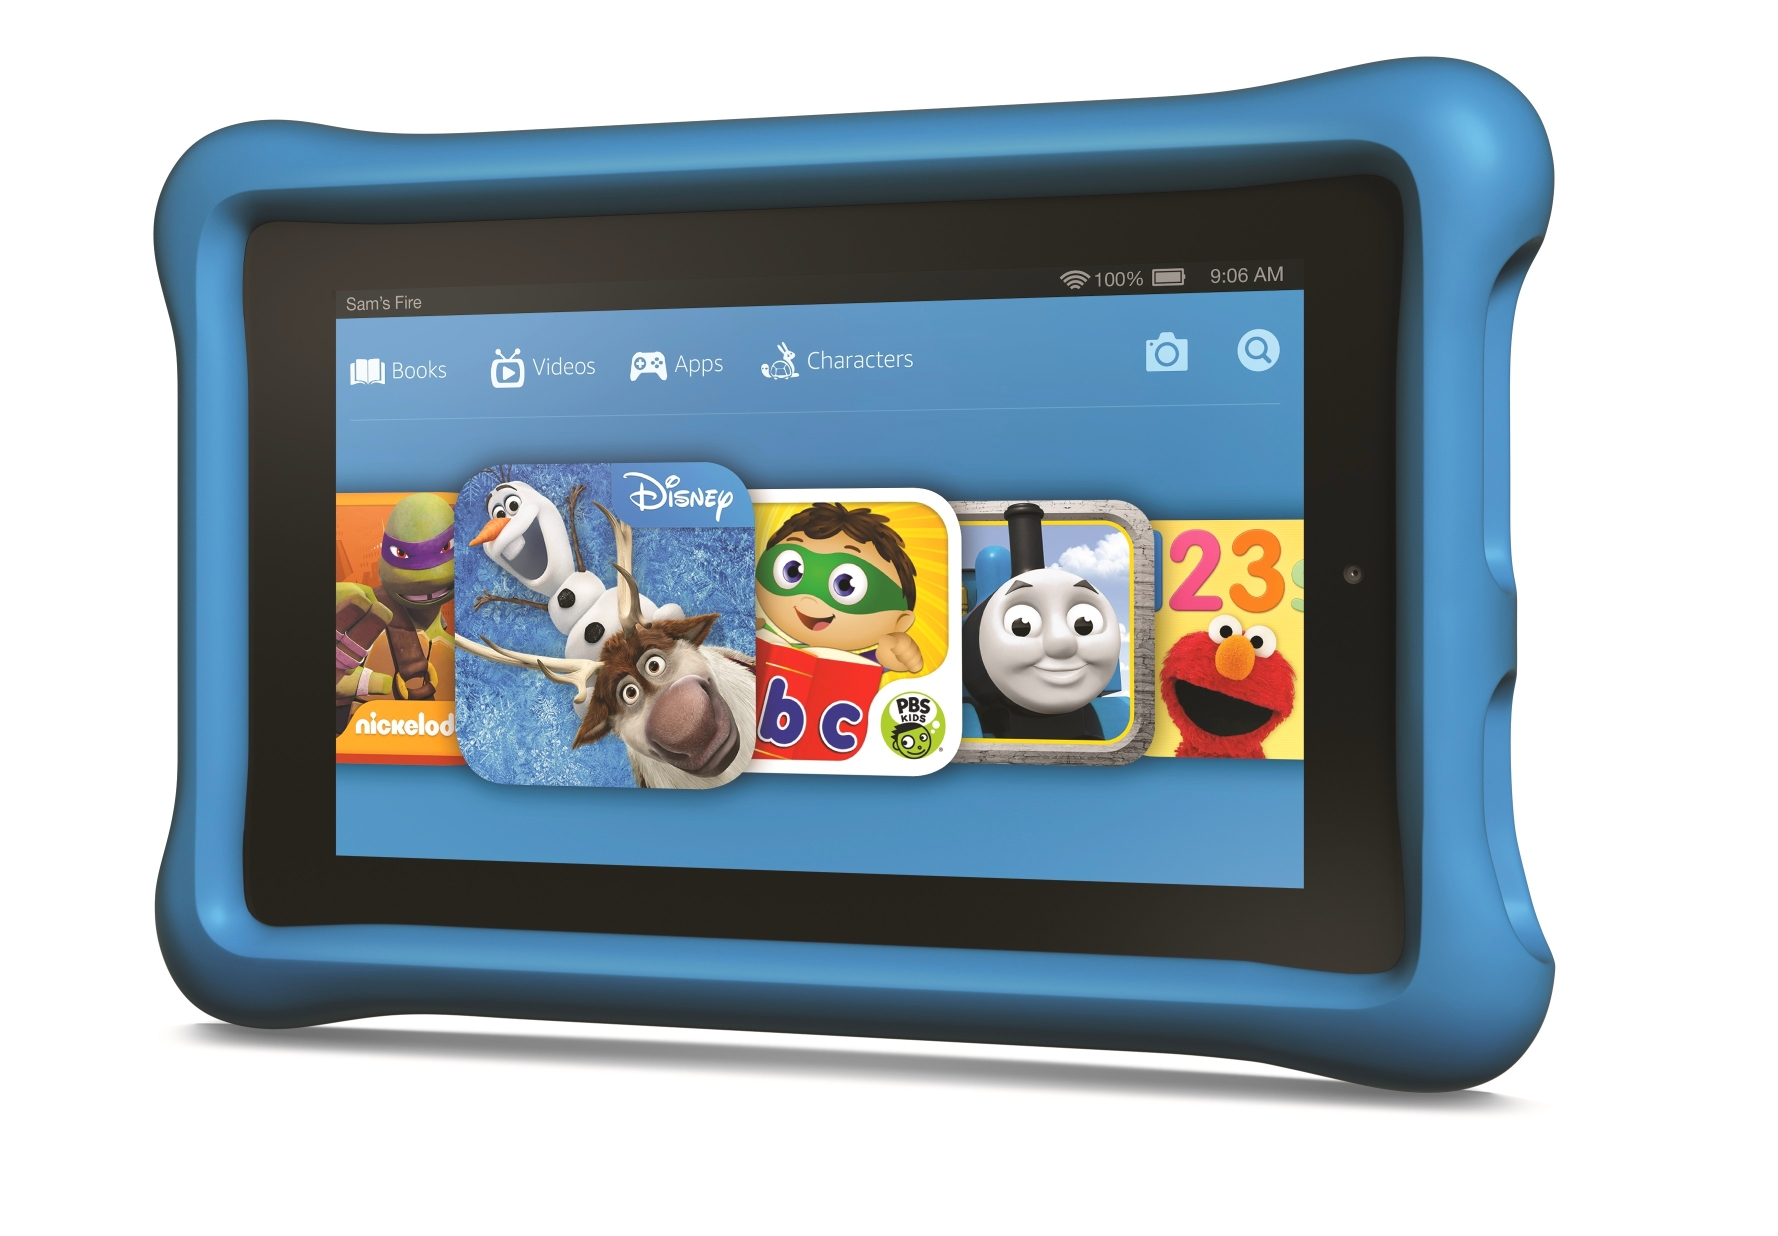 New Amazon Fire Tablet Models For 2015 2016